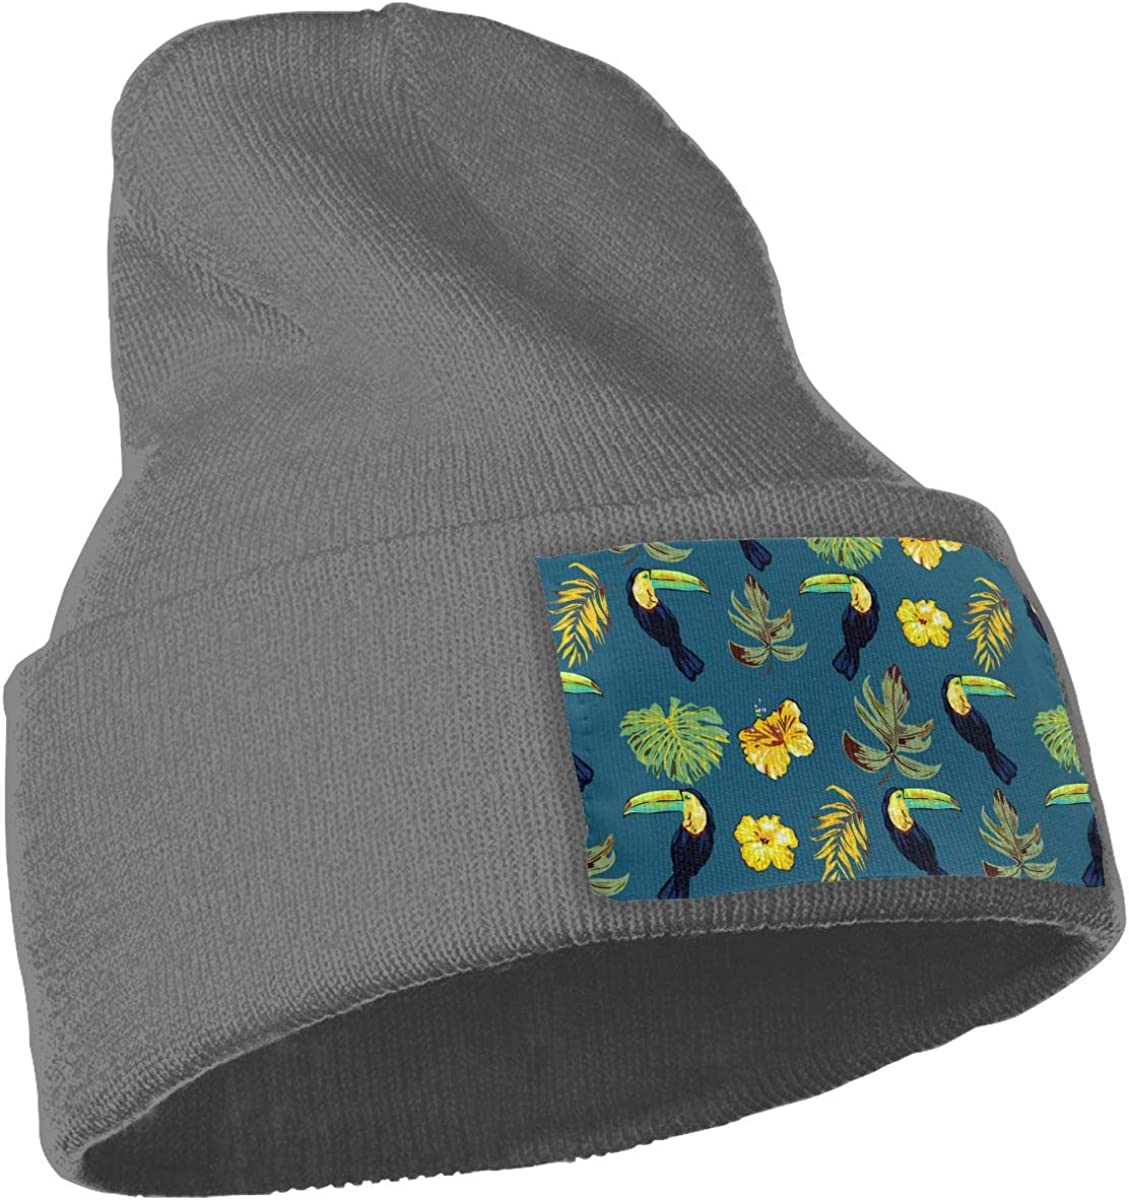 The Plants are On The Parrot Unisex Fashion Knitted Hat Luxury Hip-Hop Cap